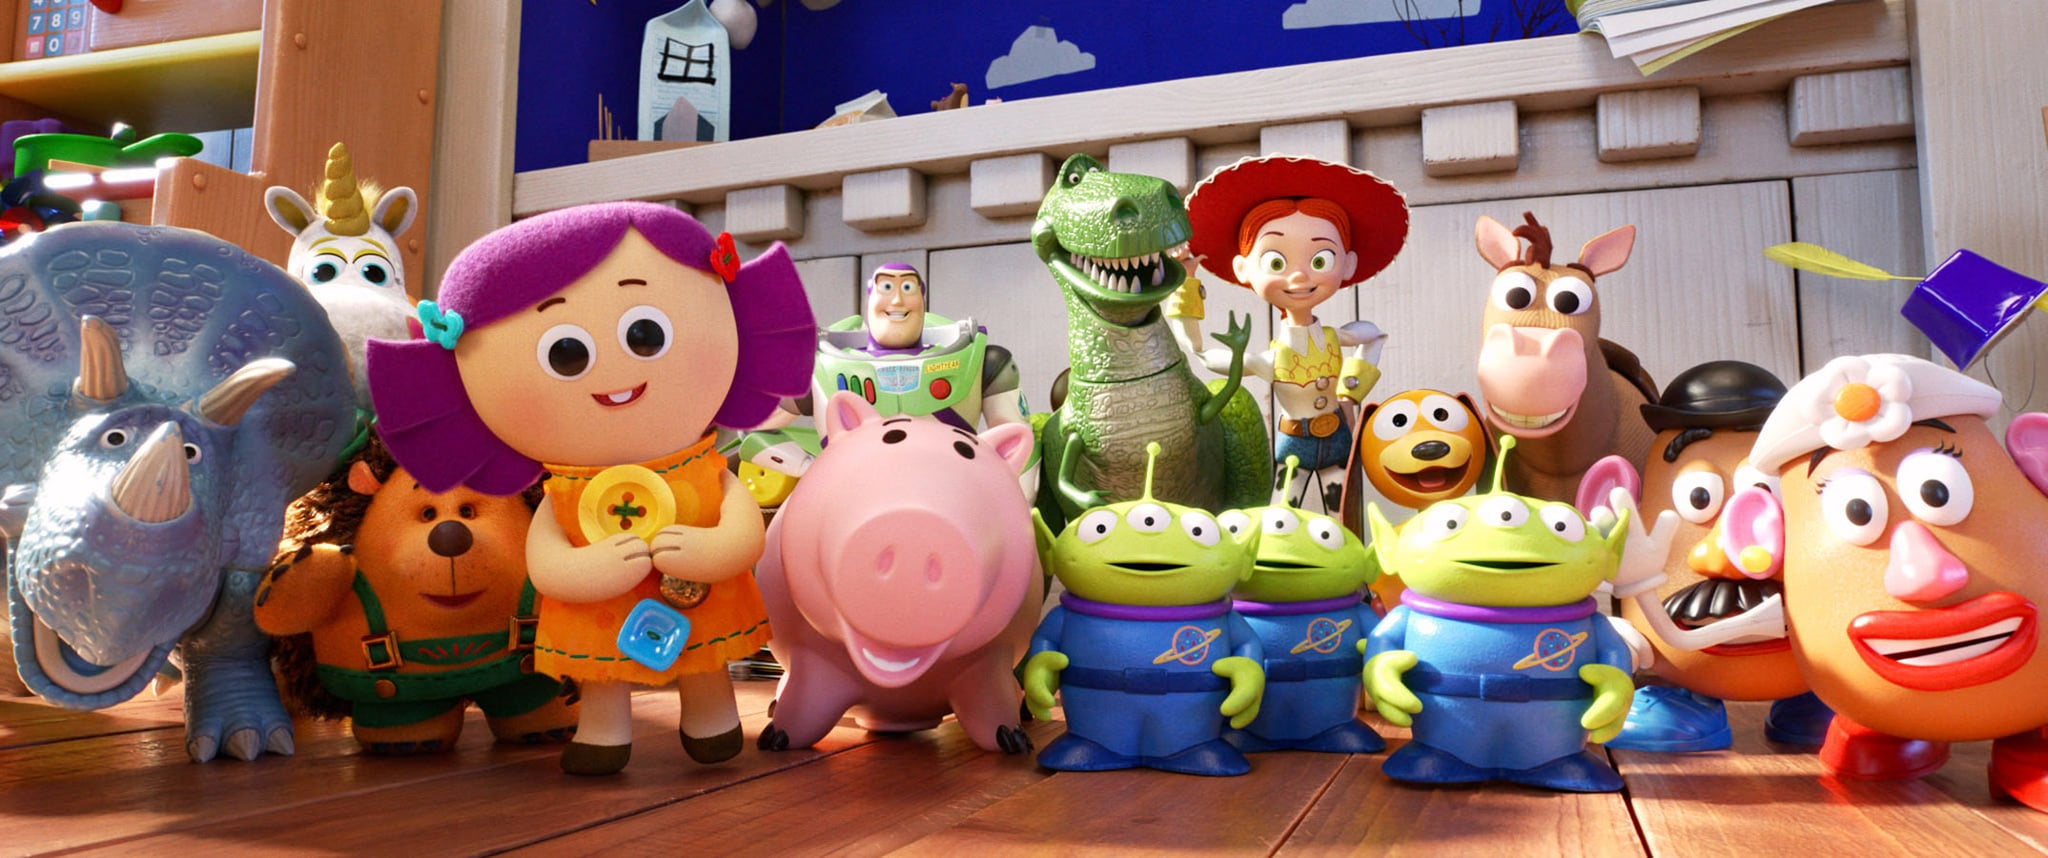 TOY STORY 4, rear from left: Buttercup, Buzz Lightyear, Rex, Jessie, Slinky Dog, Bullseye; front from left: Trixie, Mr. Pricklepants, Dolly, Squeeze Toy Aliens, Mr. Potato Head, Mrs. Potato Head, 2019.  Walt Disney Studios Motion Pictures / courtesy Everett Collection